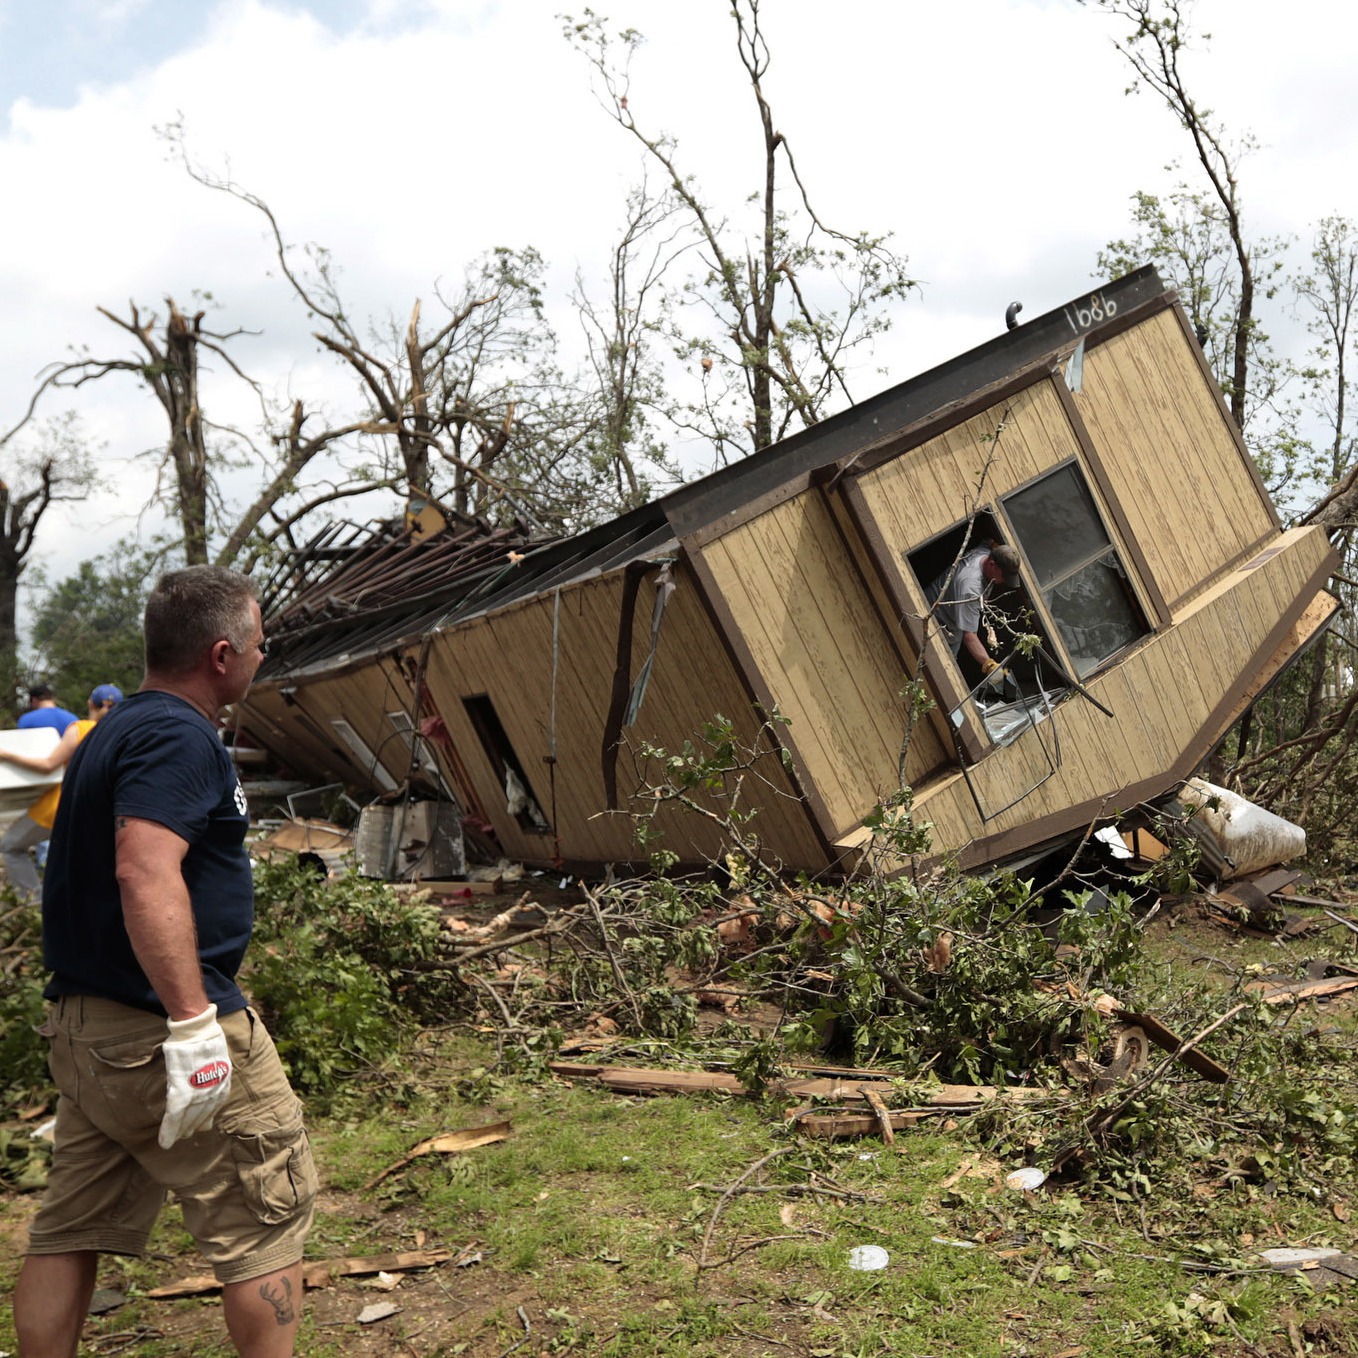 Volunteers help clean out Jean McAdams' mobile home after it was overturned by a tornado today near Shawnee, Oklahoma.